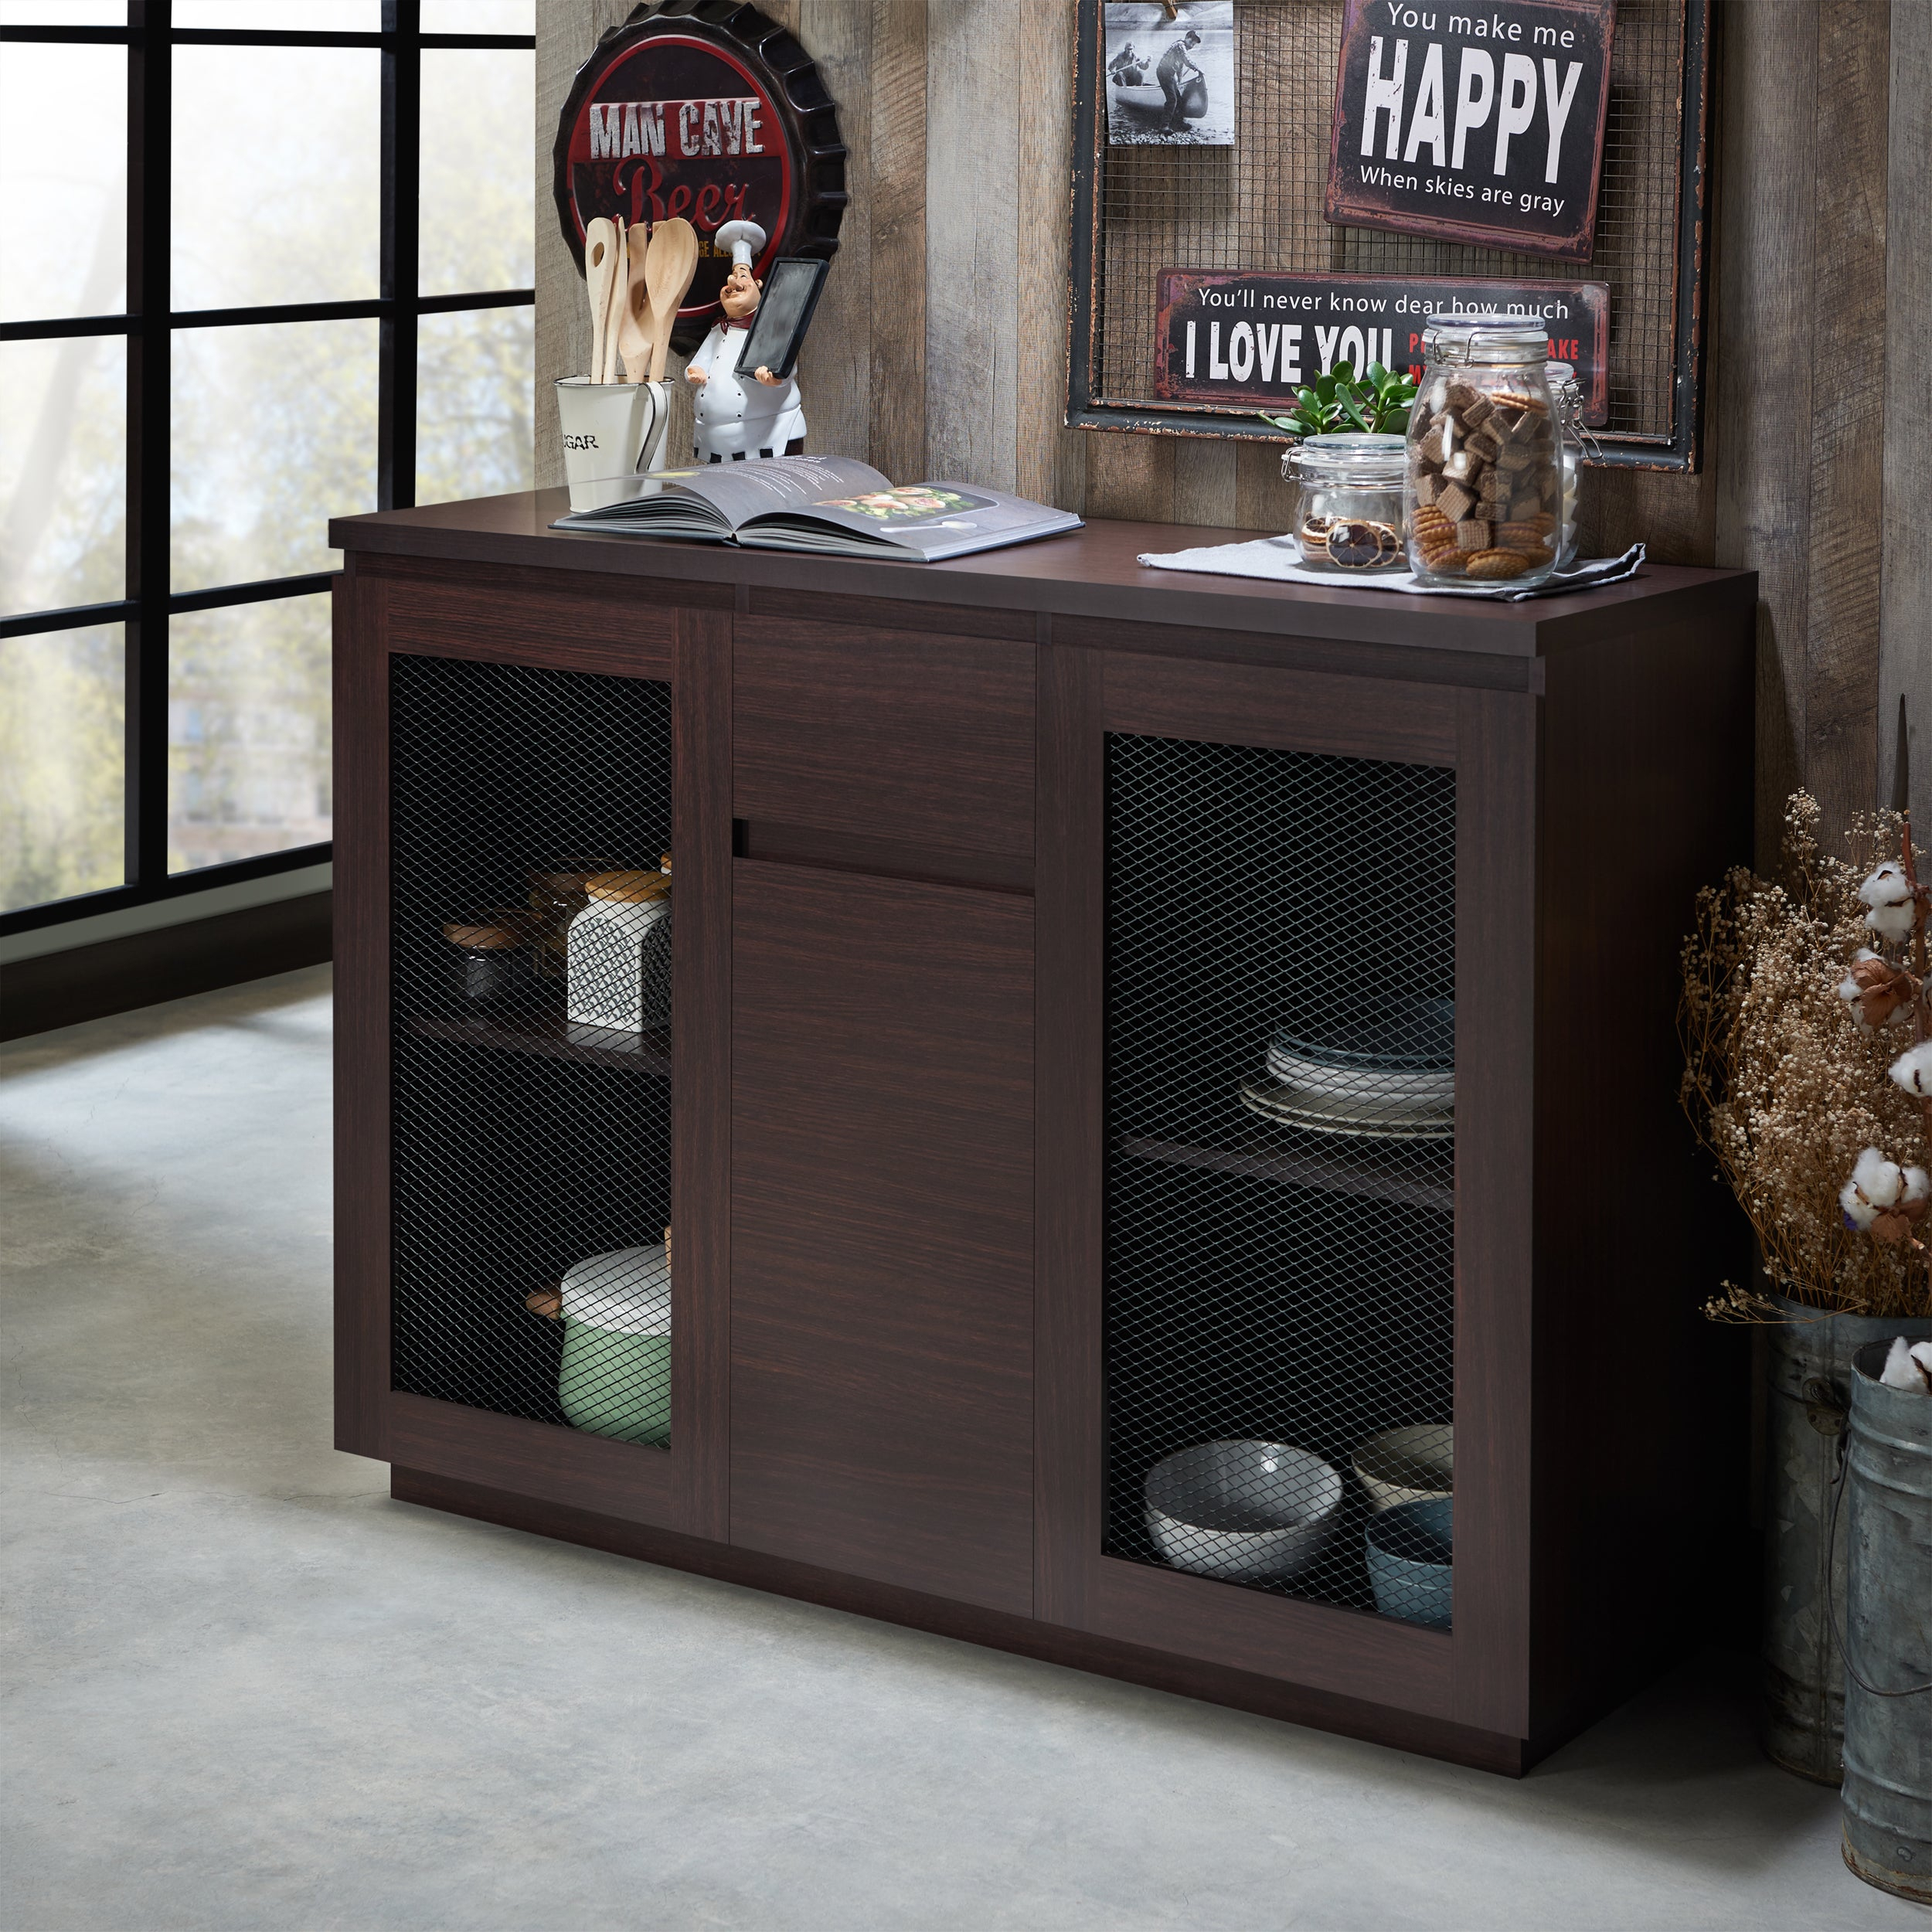 Furniture Of America Darwen Contemporary Multi Storage Dining Buffet In Contemporary Multi Storage Dining Buffets (View 6 of 30)